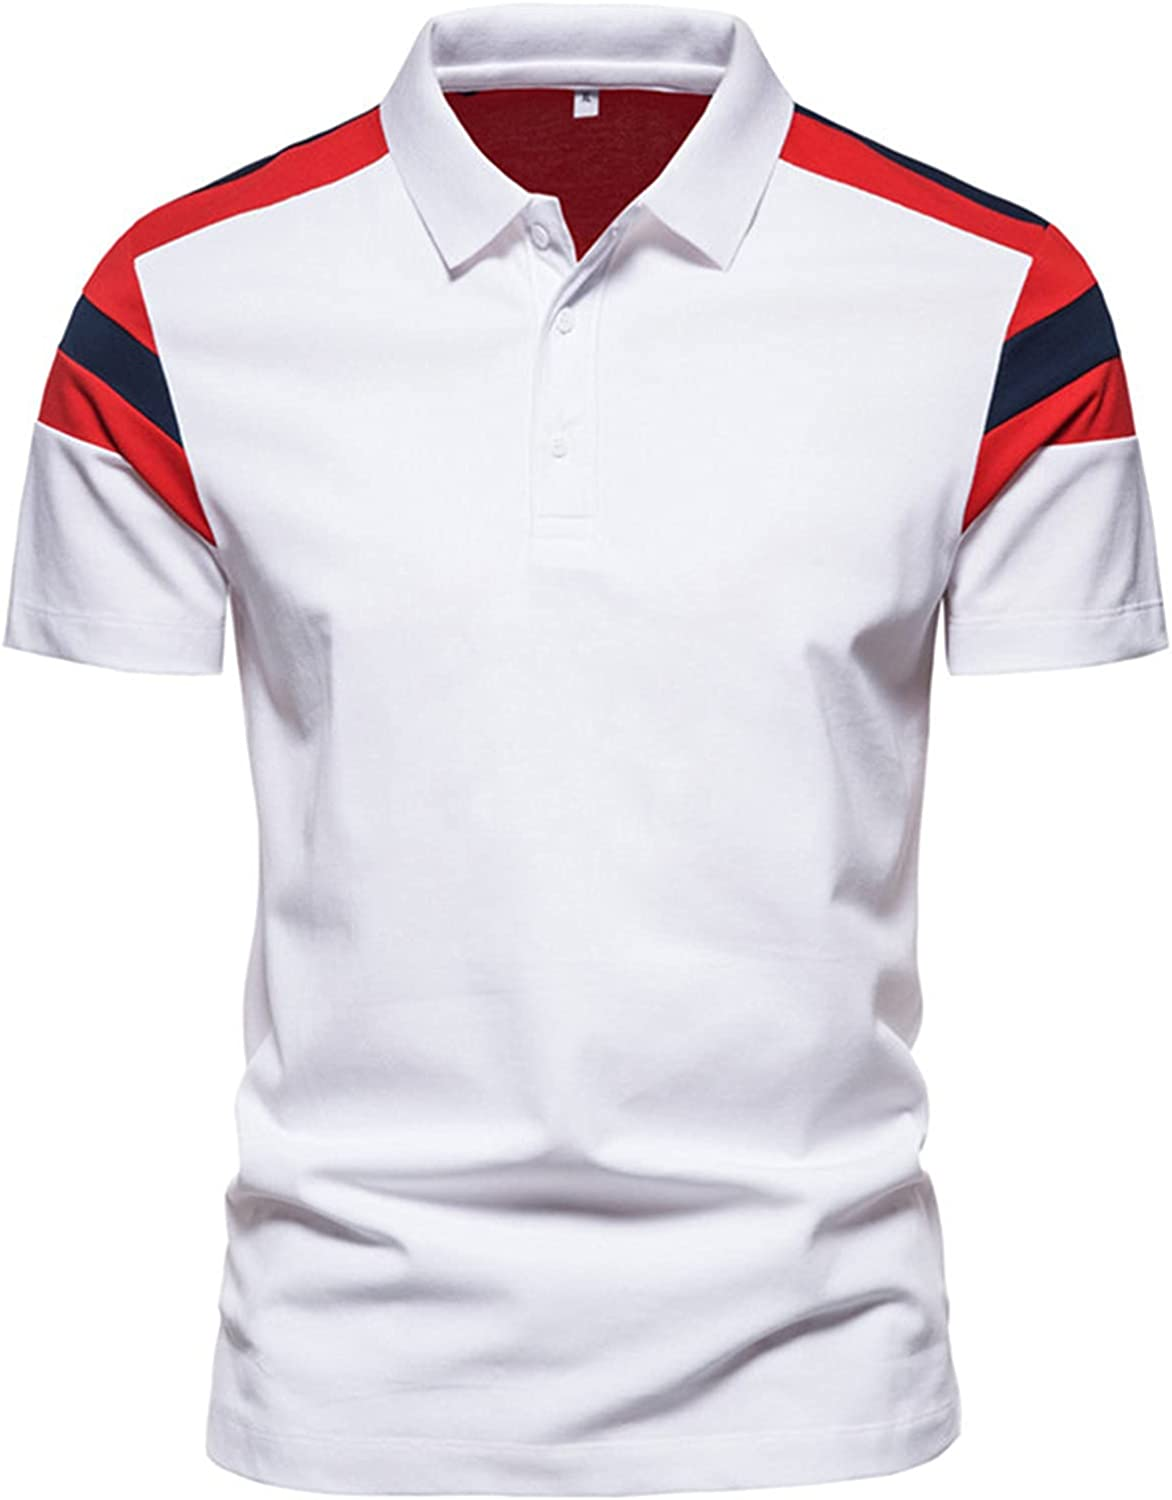 Mens Short Sleeve Polo Shirts Quick Dry Big and Tall Shirt Sports Breathable Tops Striped Casual Summer Tennis T-Shirts